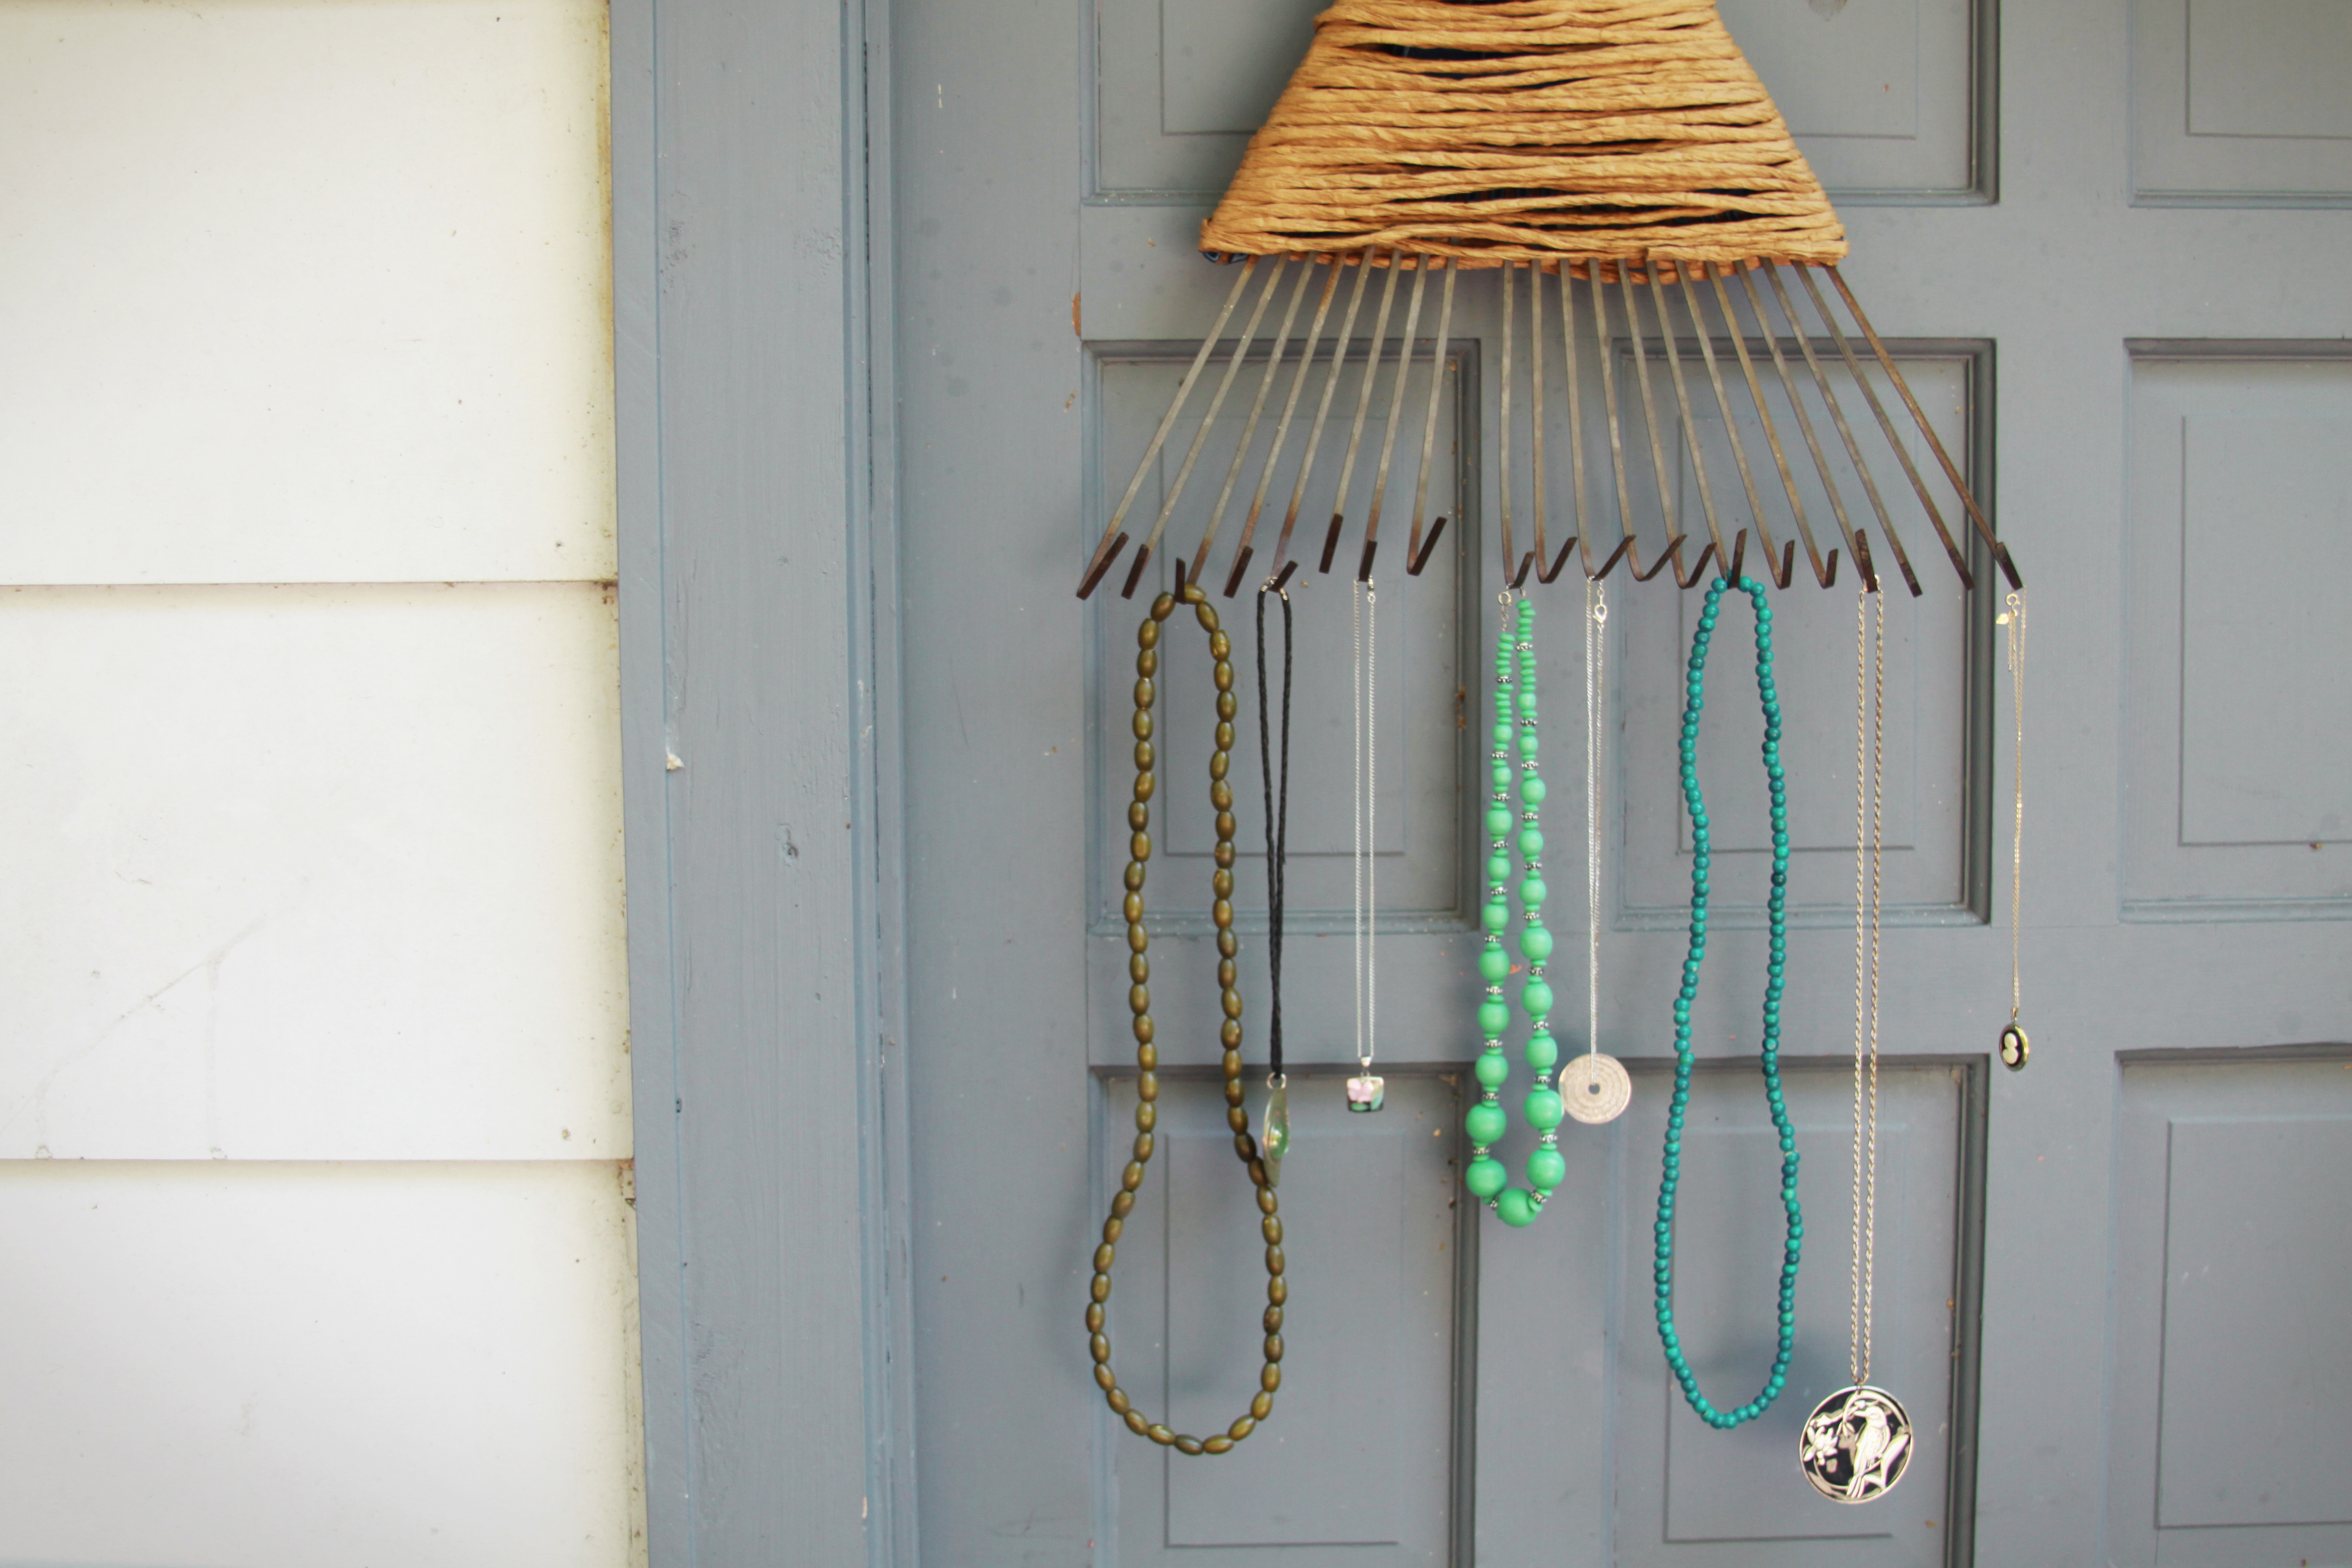 Best ideas about DIY Necklace Holder . Save or Pin DIY Rake Necklace Holder Now.